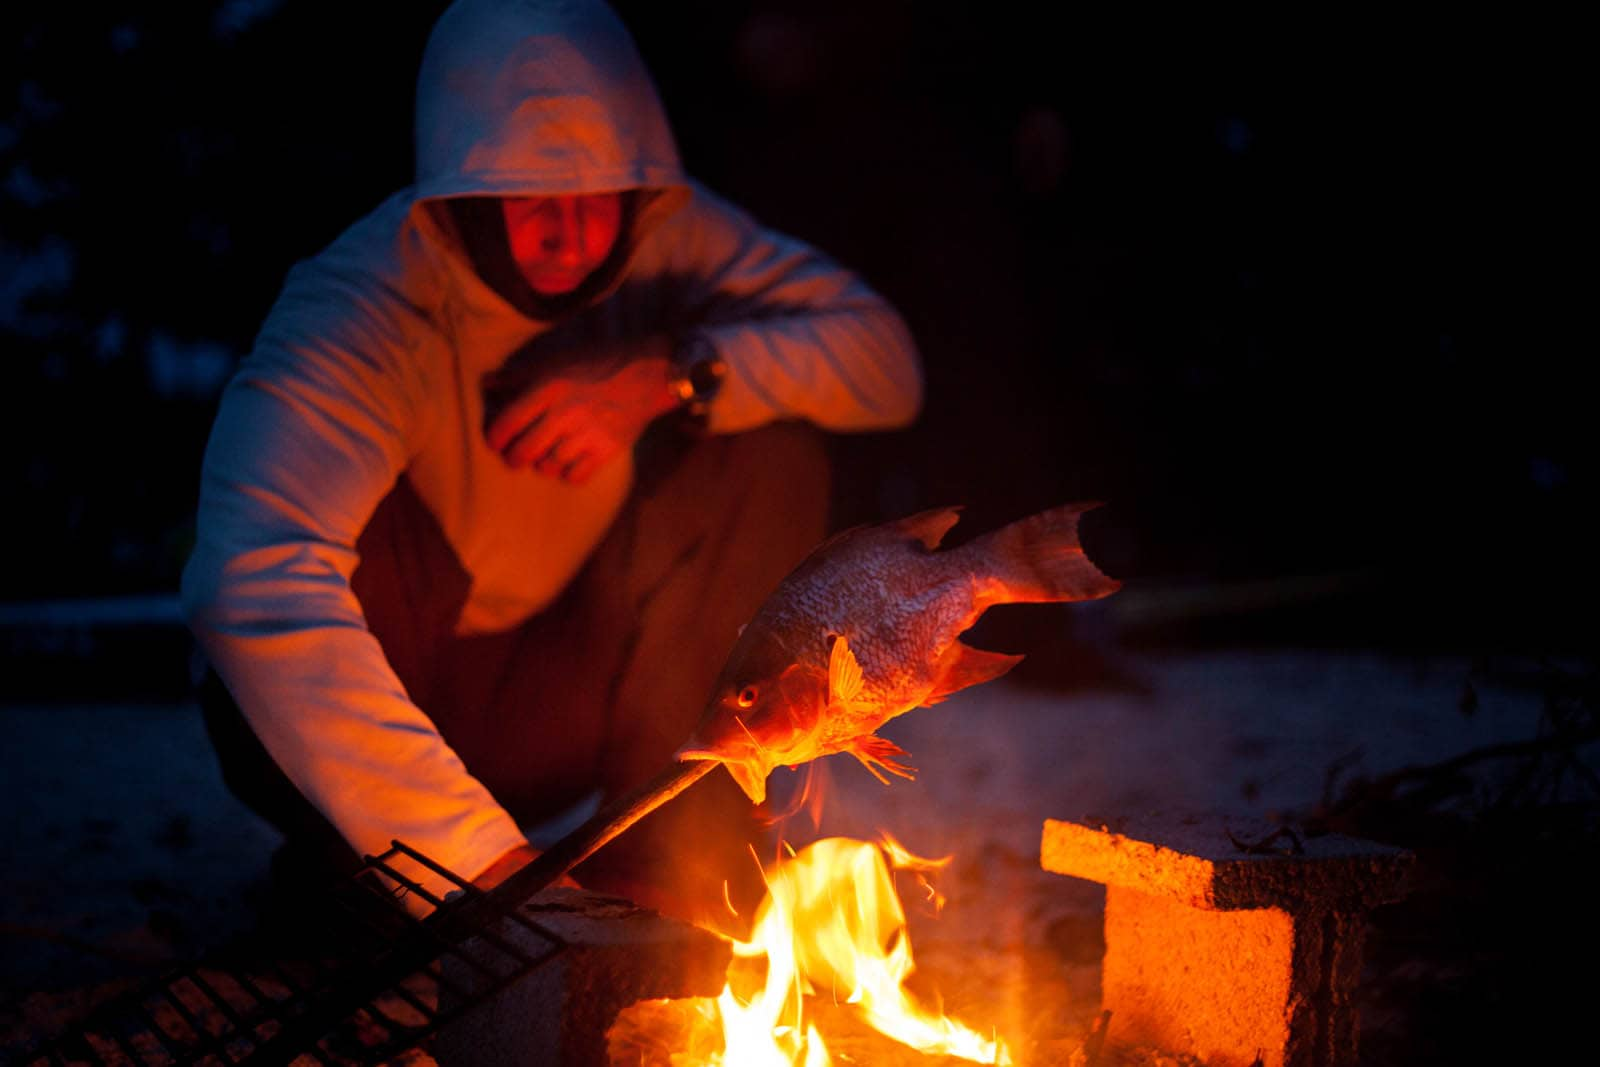 Cooking fish for dinner over an open fire while camping.